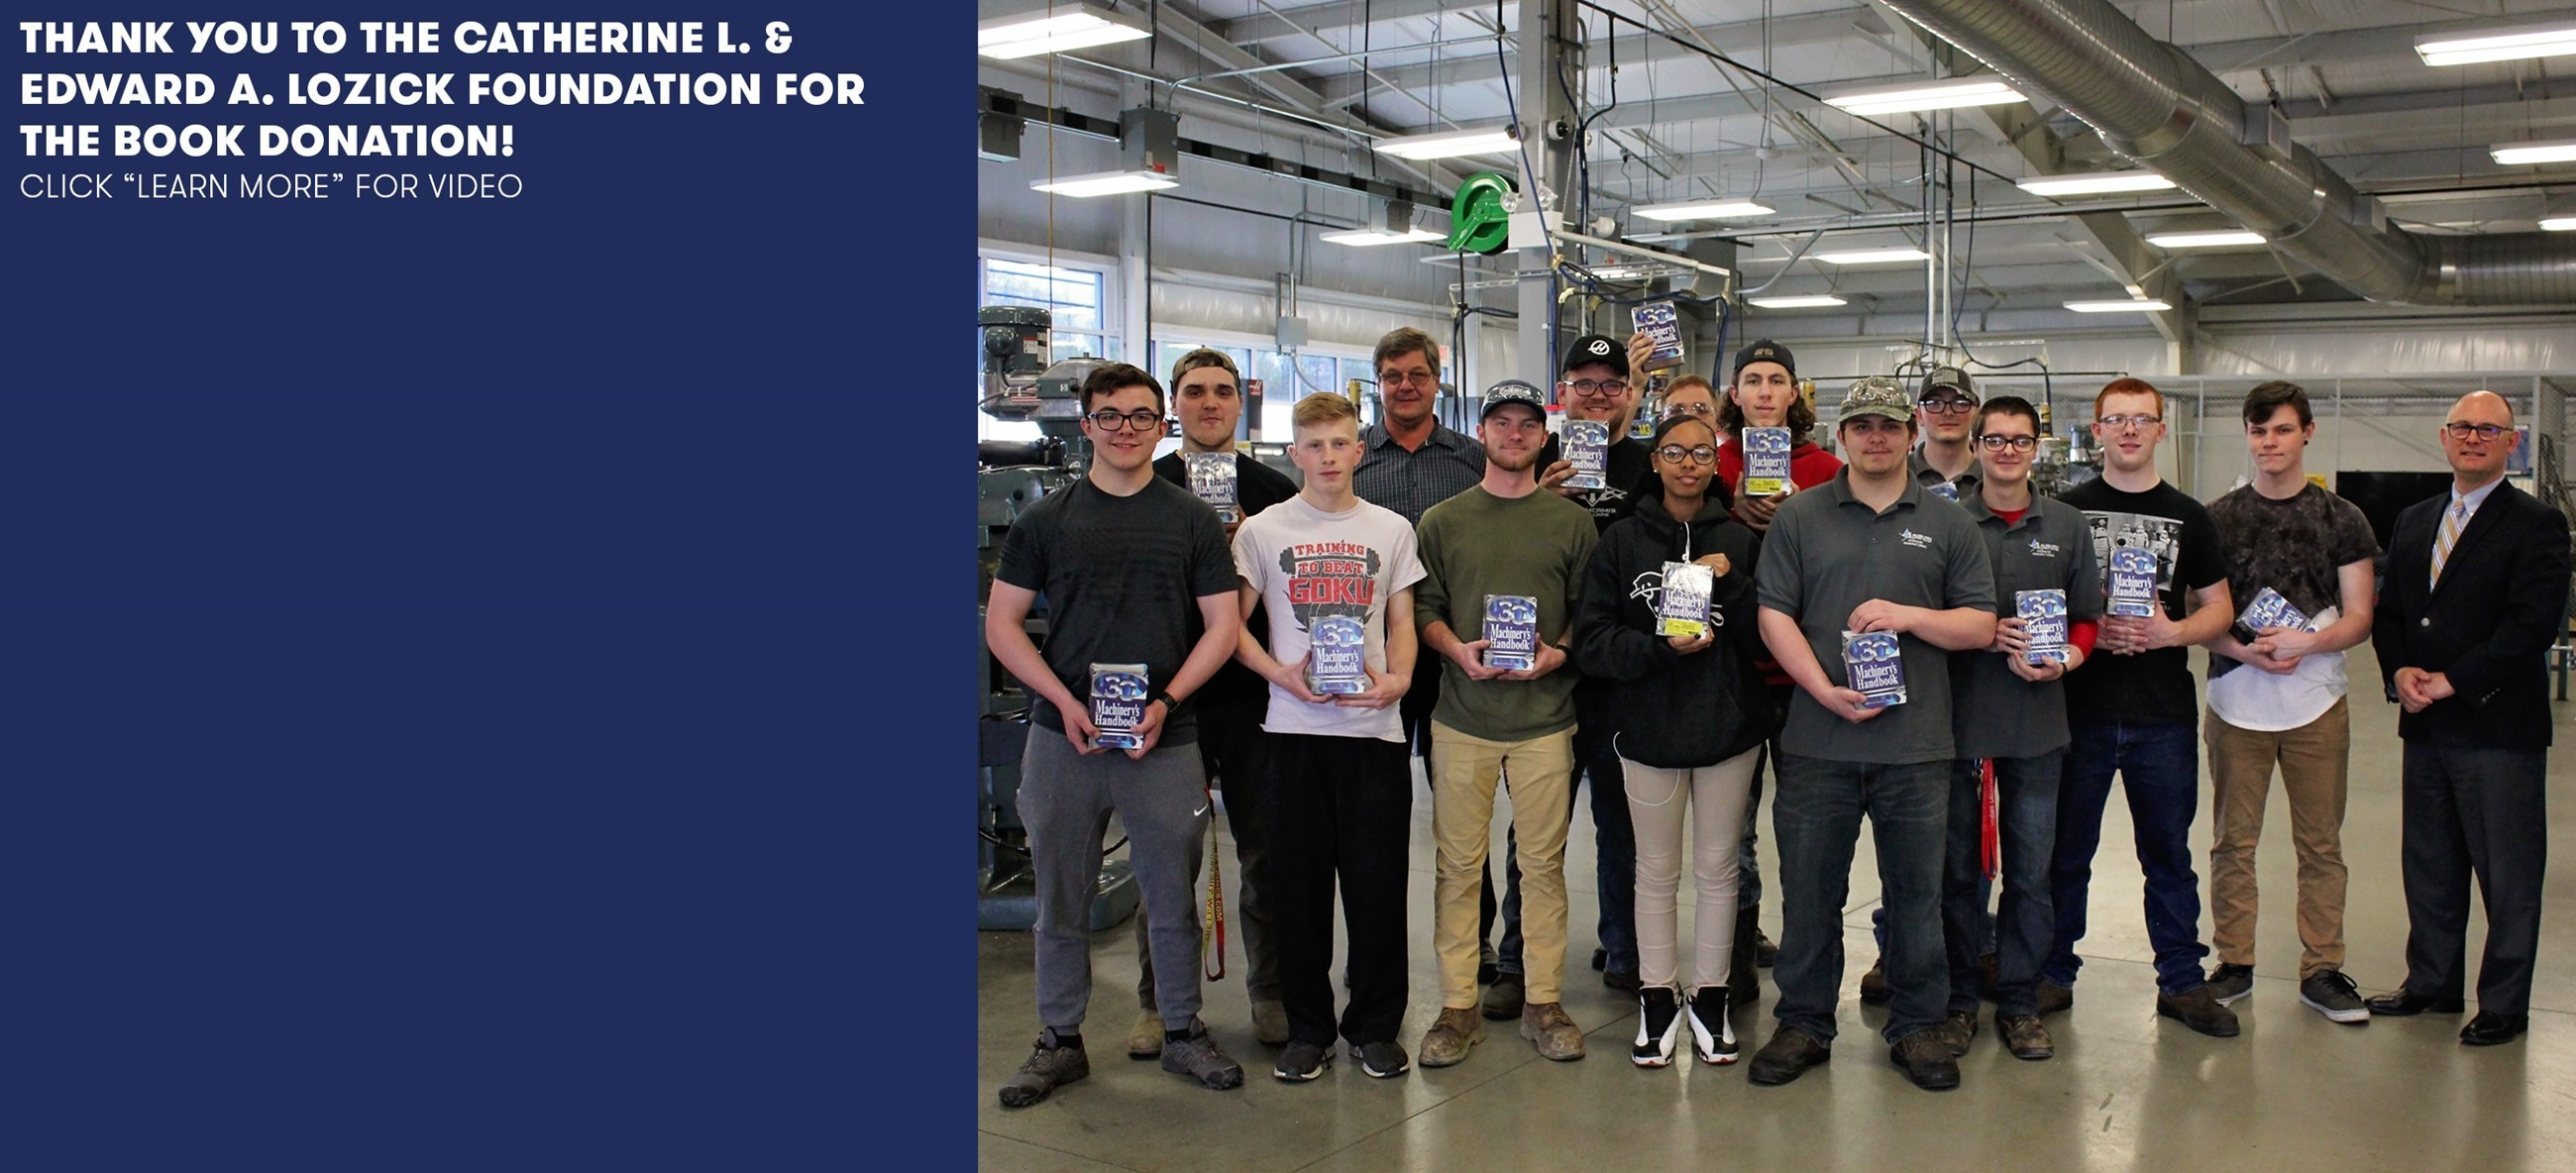 students holding books in a manufacturing classroom